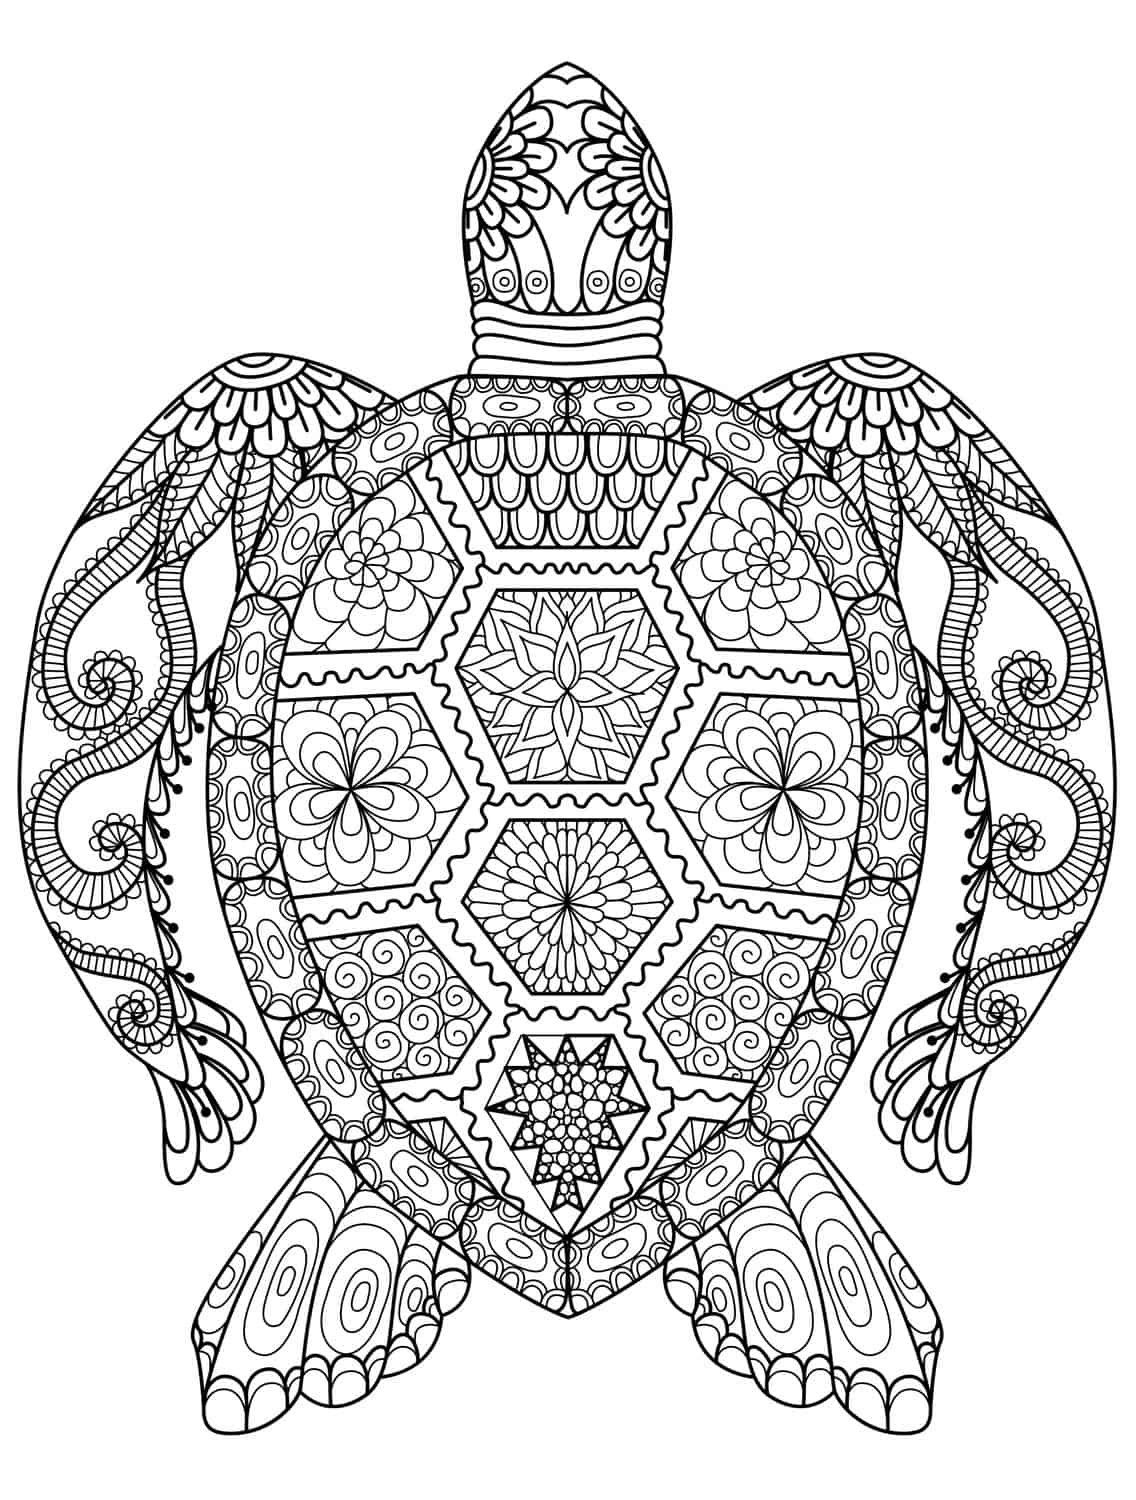 coloring books for adults online owl coloring pages for adults free detailed owl coloring adults books for coloring online 1 1